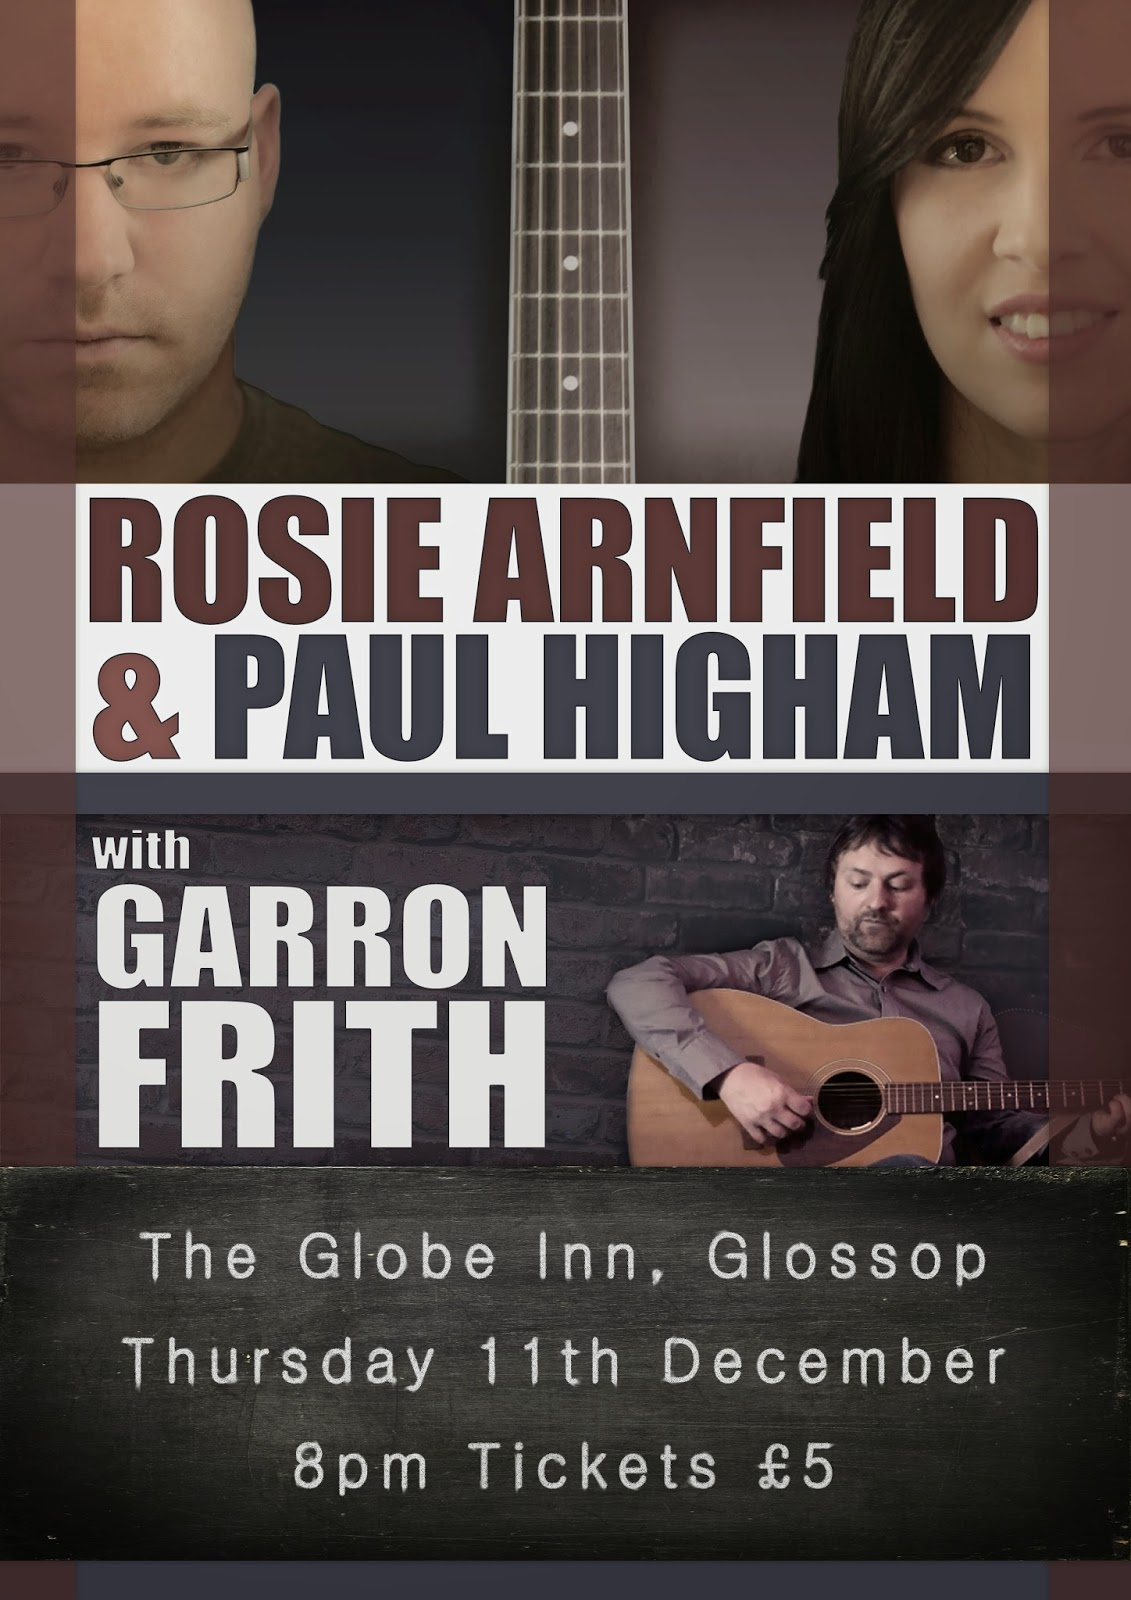 Rosie Arnfield & Paul Higham with Garron Frith